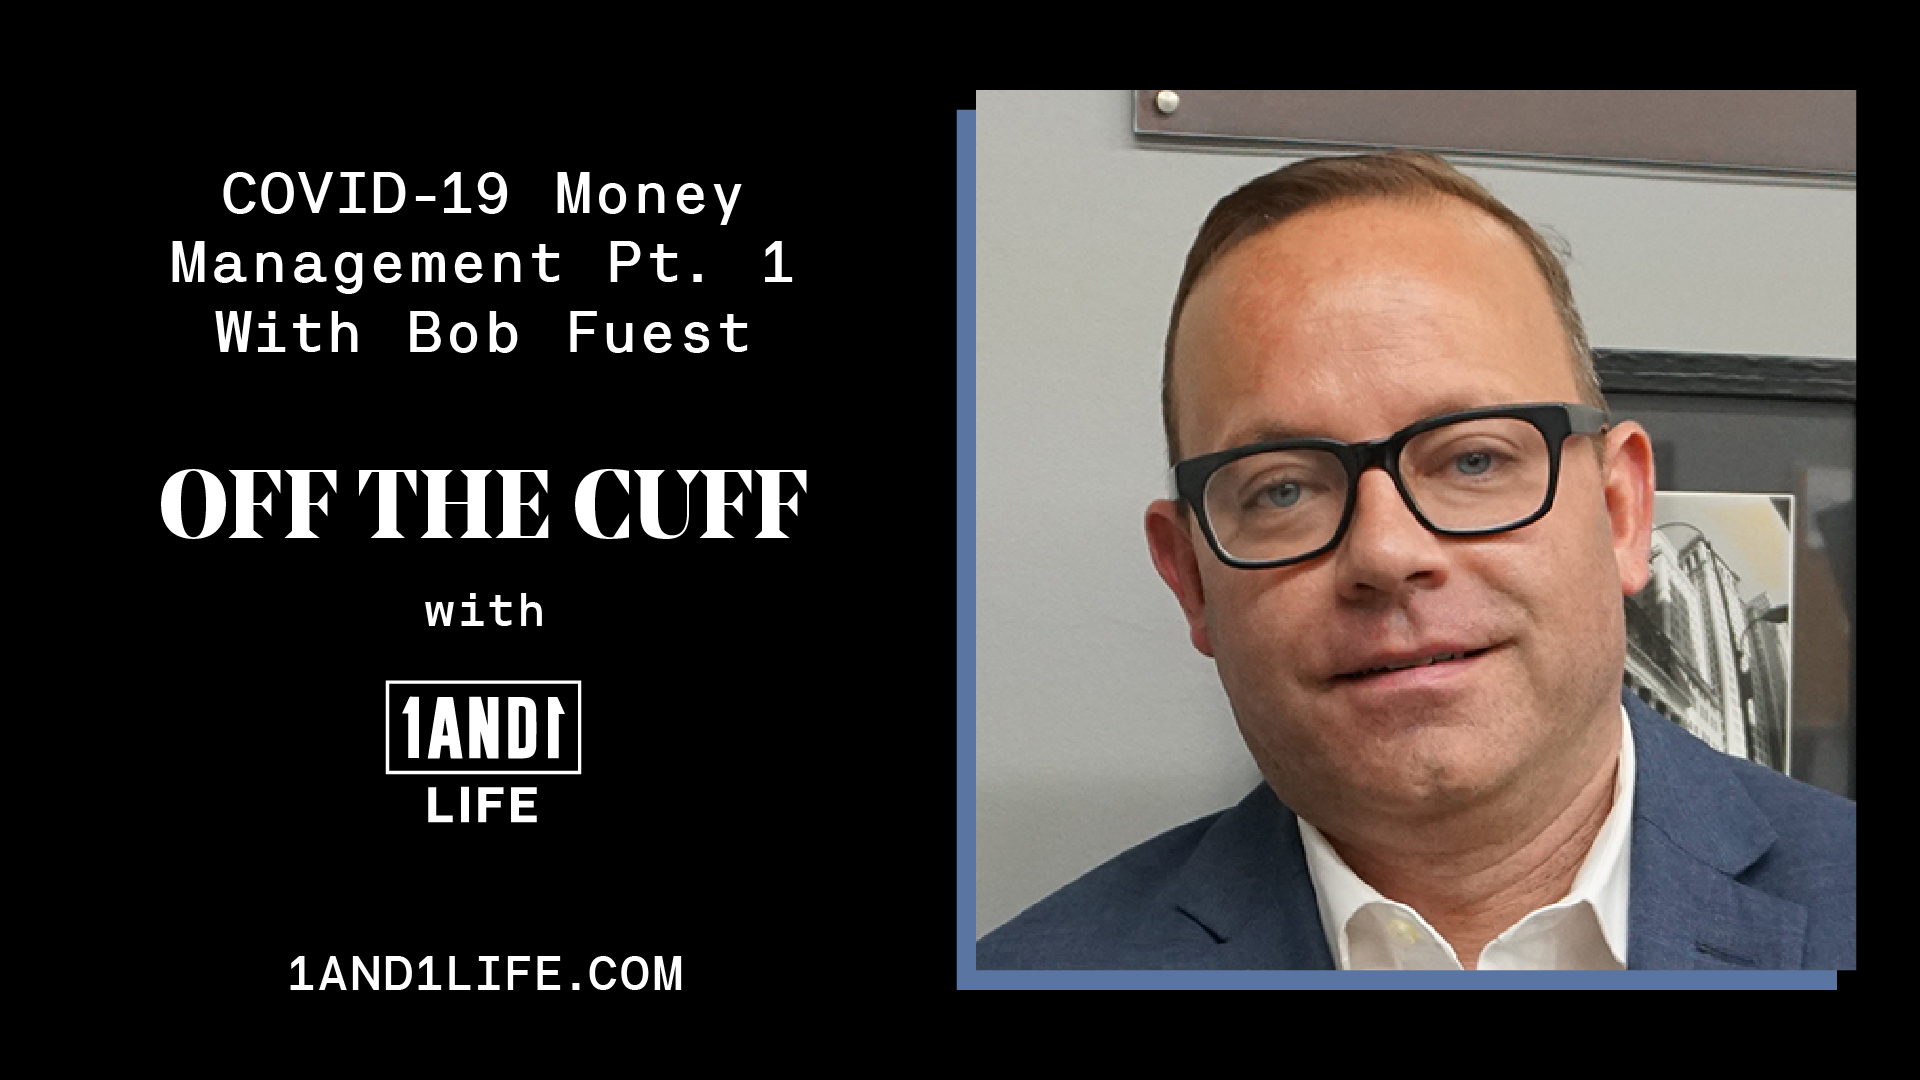 Bob Fuest - Off The Cuff - 1AND1 Life